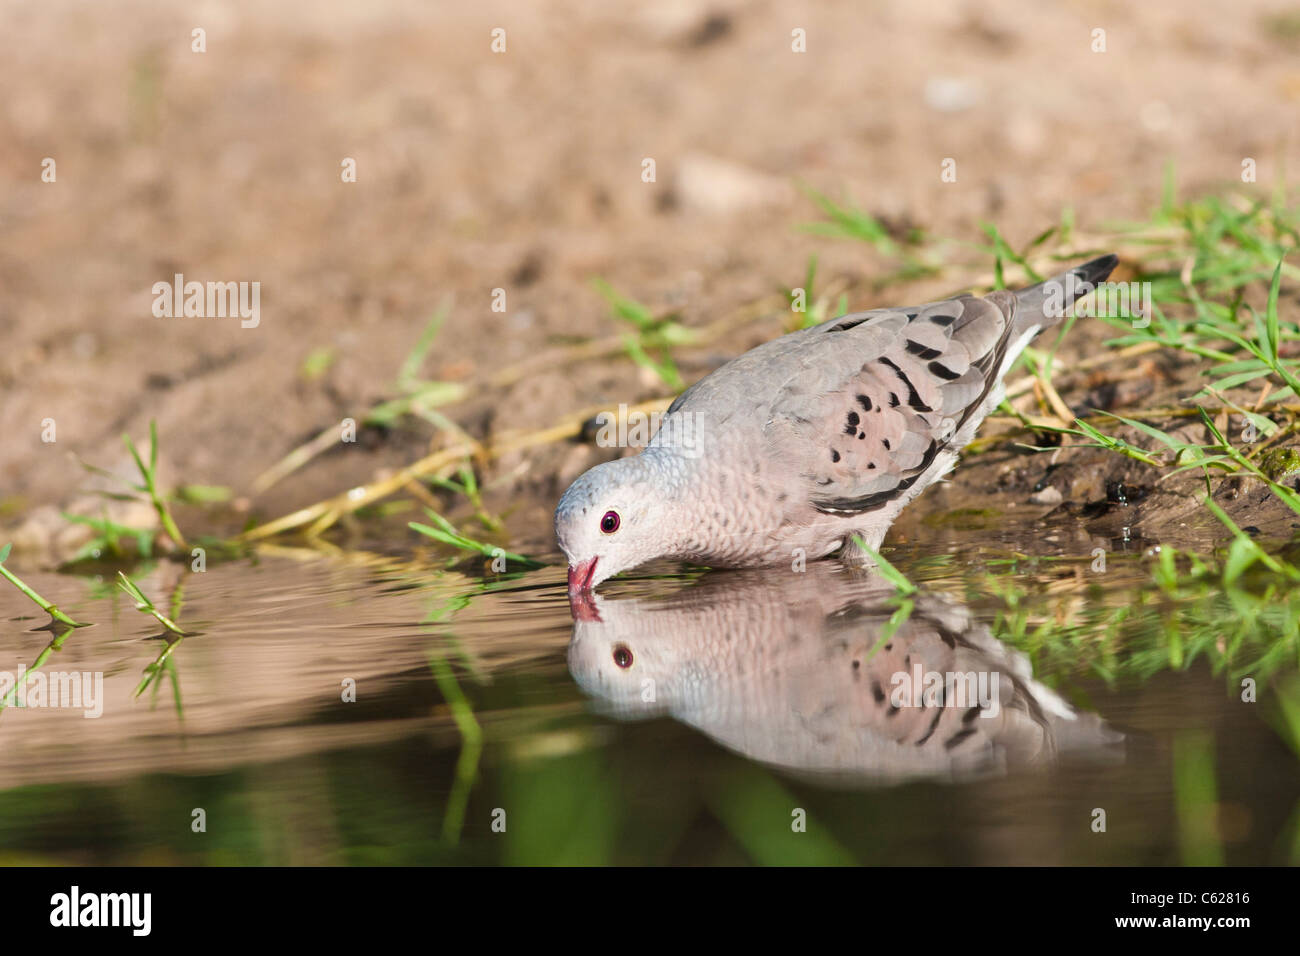 Common Ground-Dove, Columbina passerina, looking for water and relief from summer heat. - Stock Image